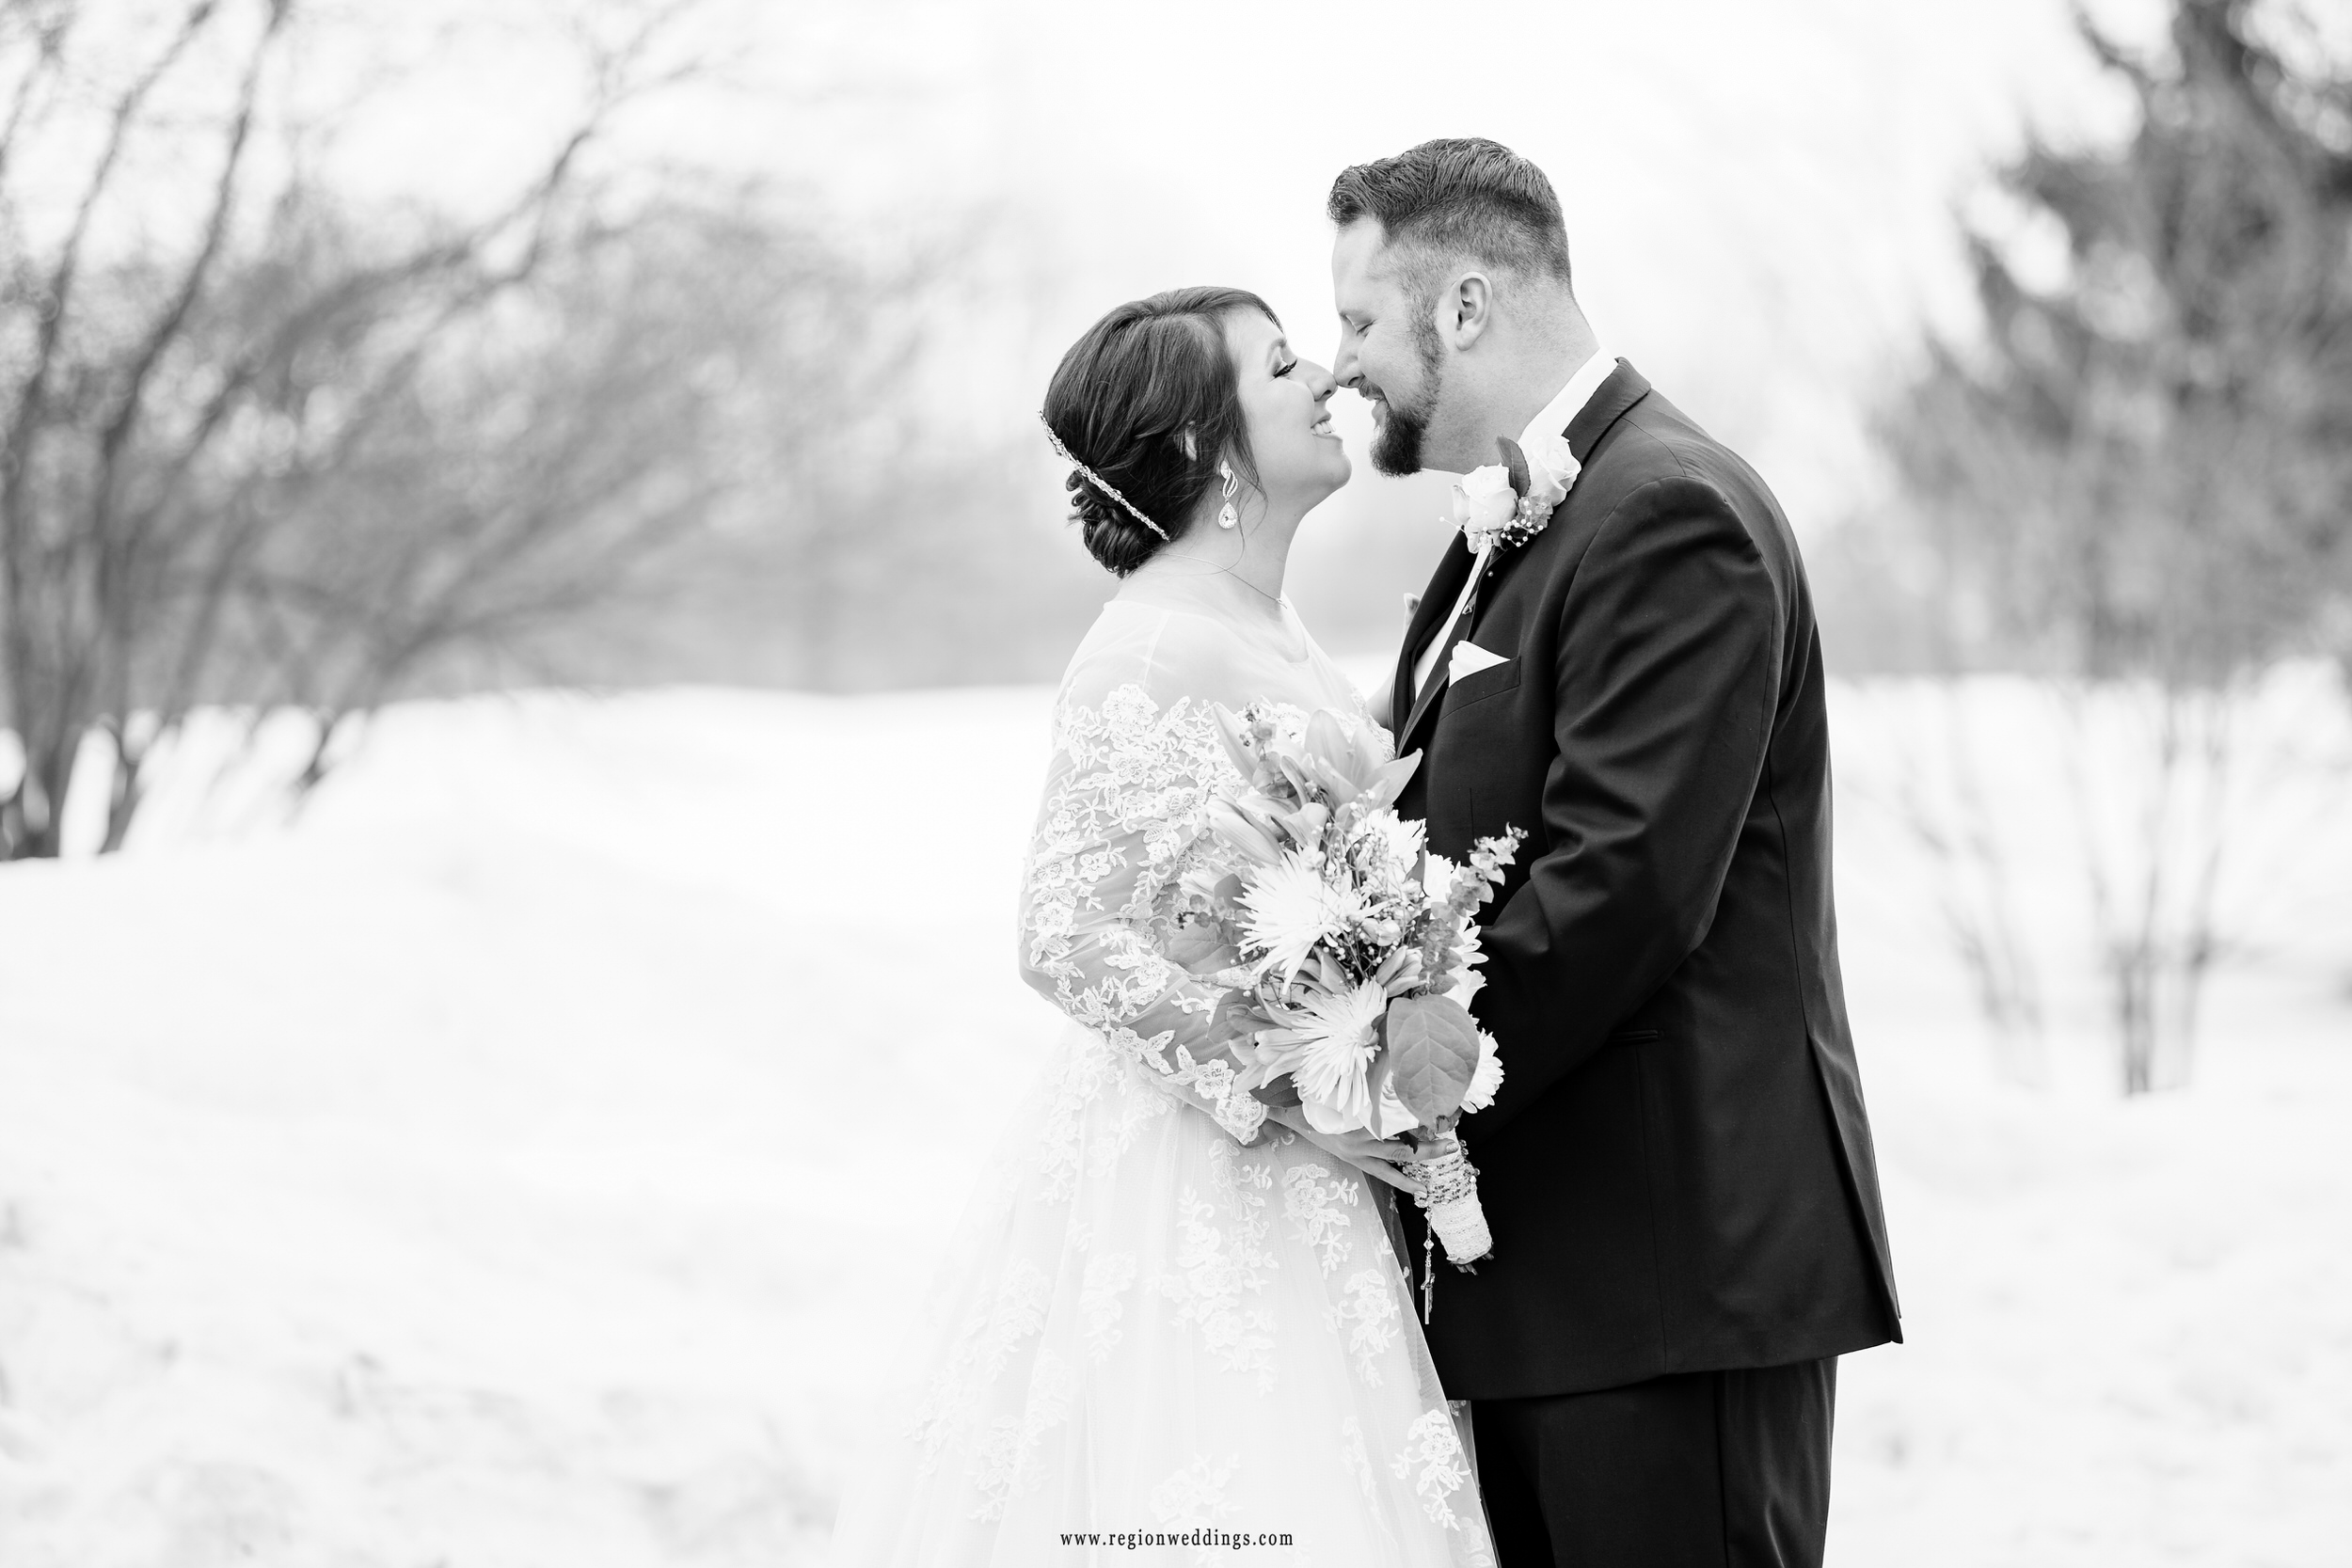 Bride and groom eskimo kiss at their winter wedding in a snow covered field.